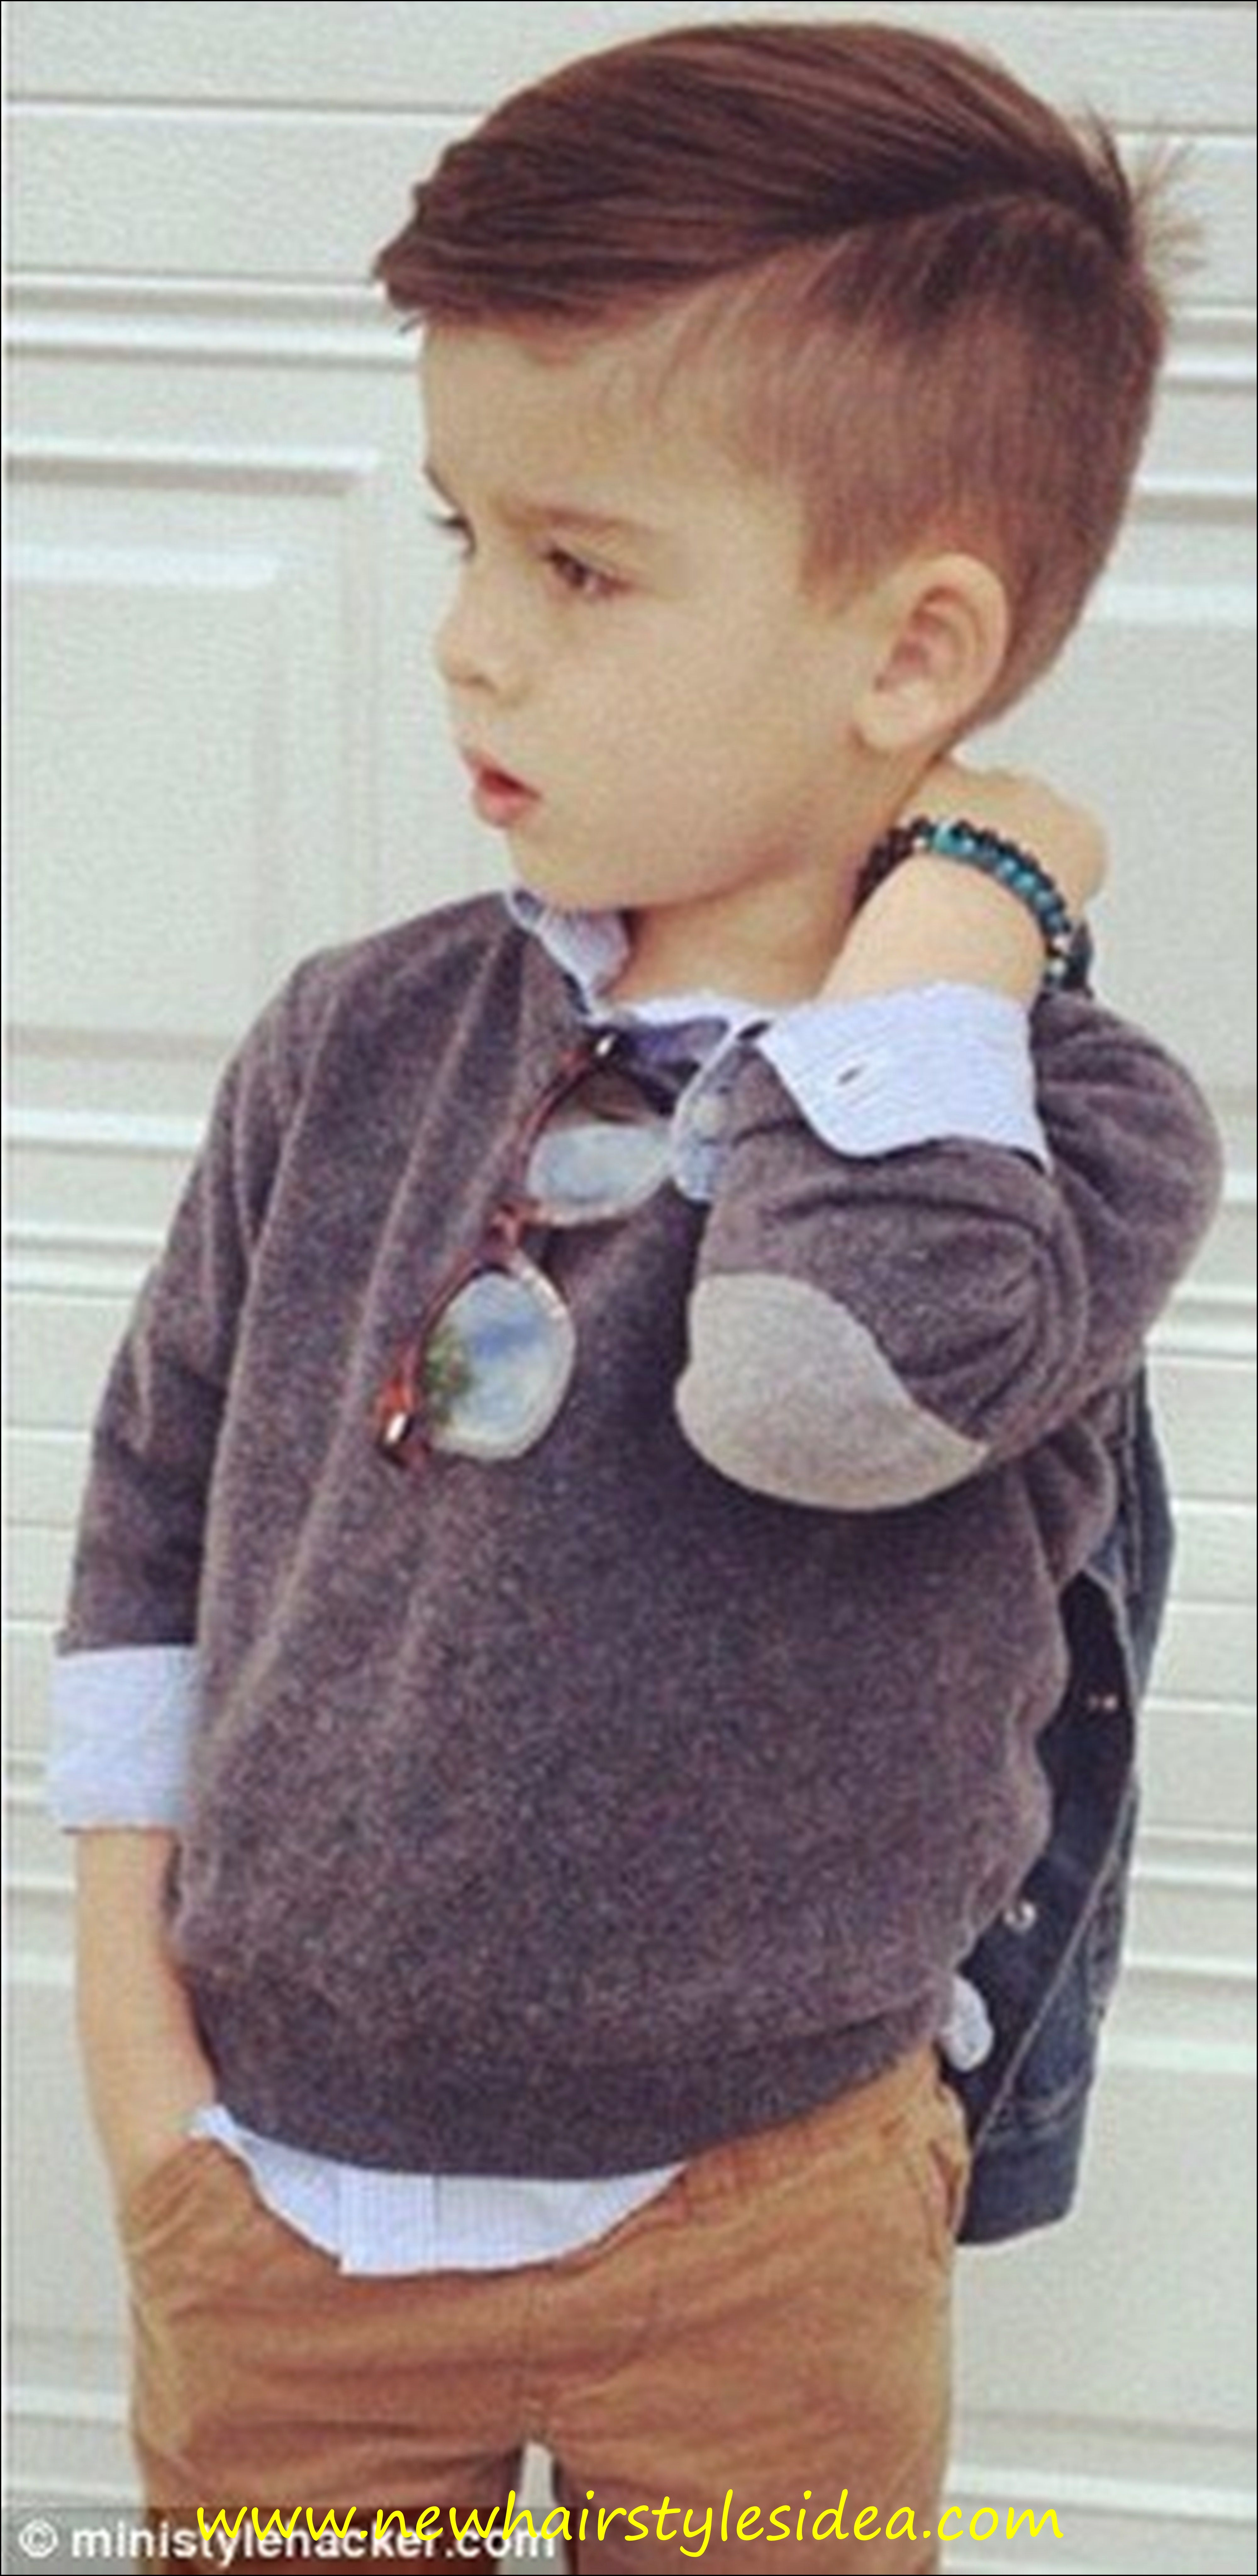 Incoming search termshair style pic boy baby boy hair cut